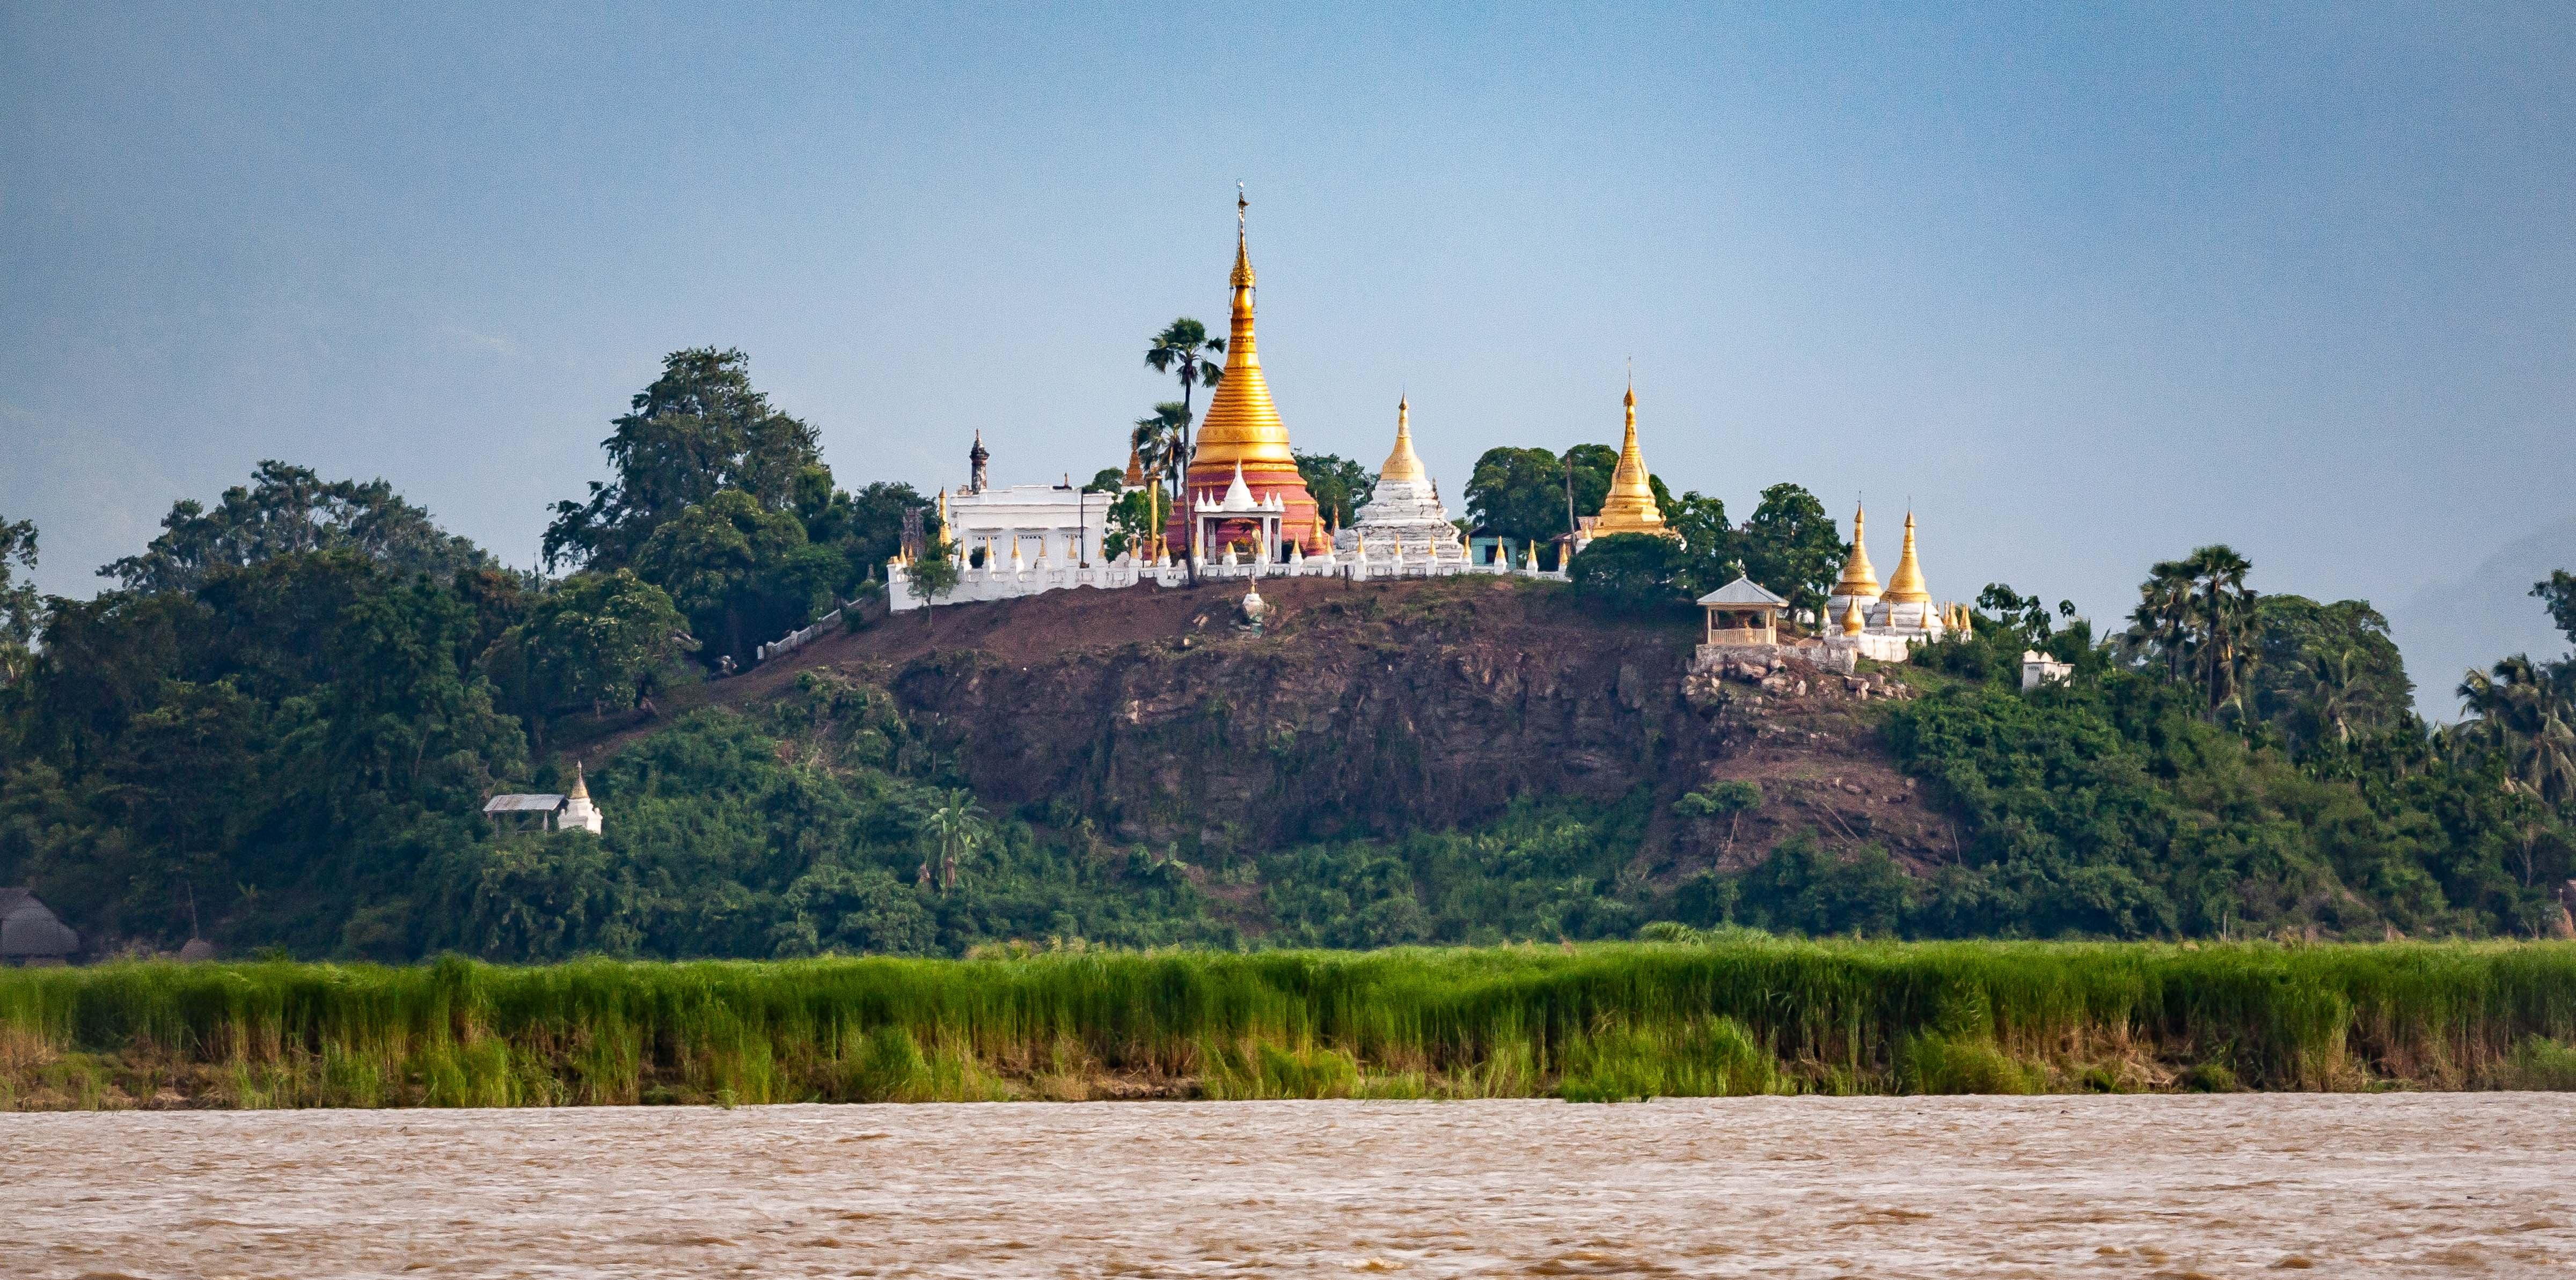 Myanmar, Unknown Prov, Temple Village Near River, 2009, IMG 3855